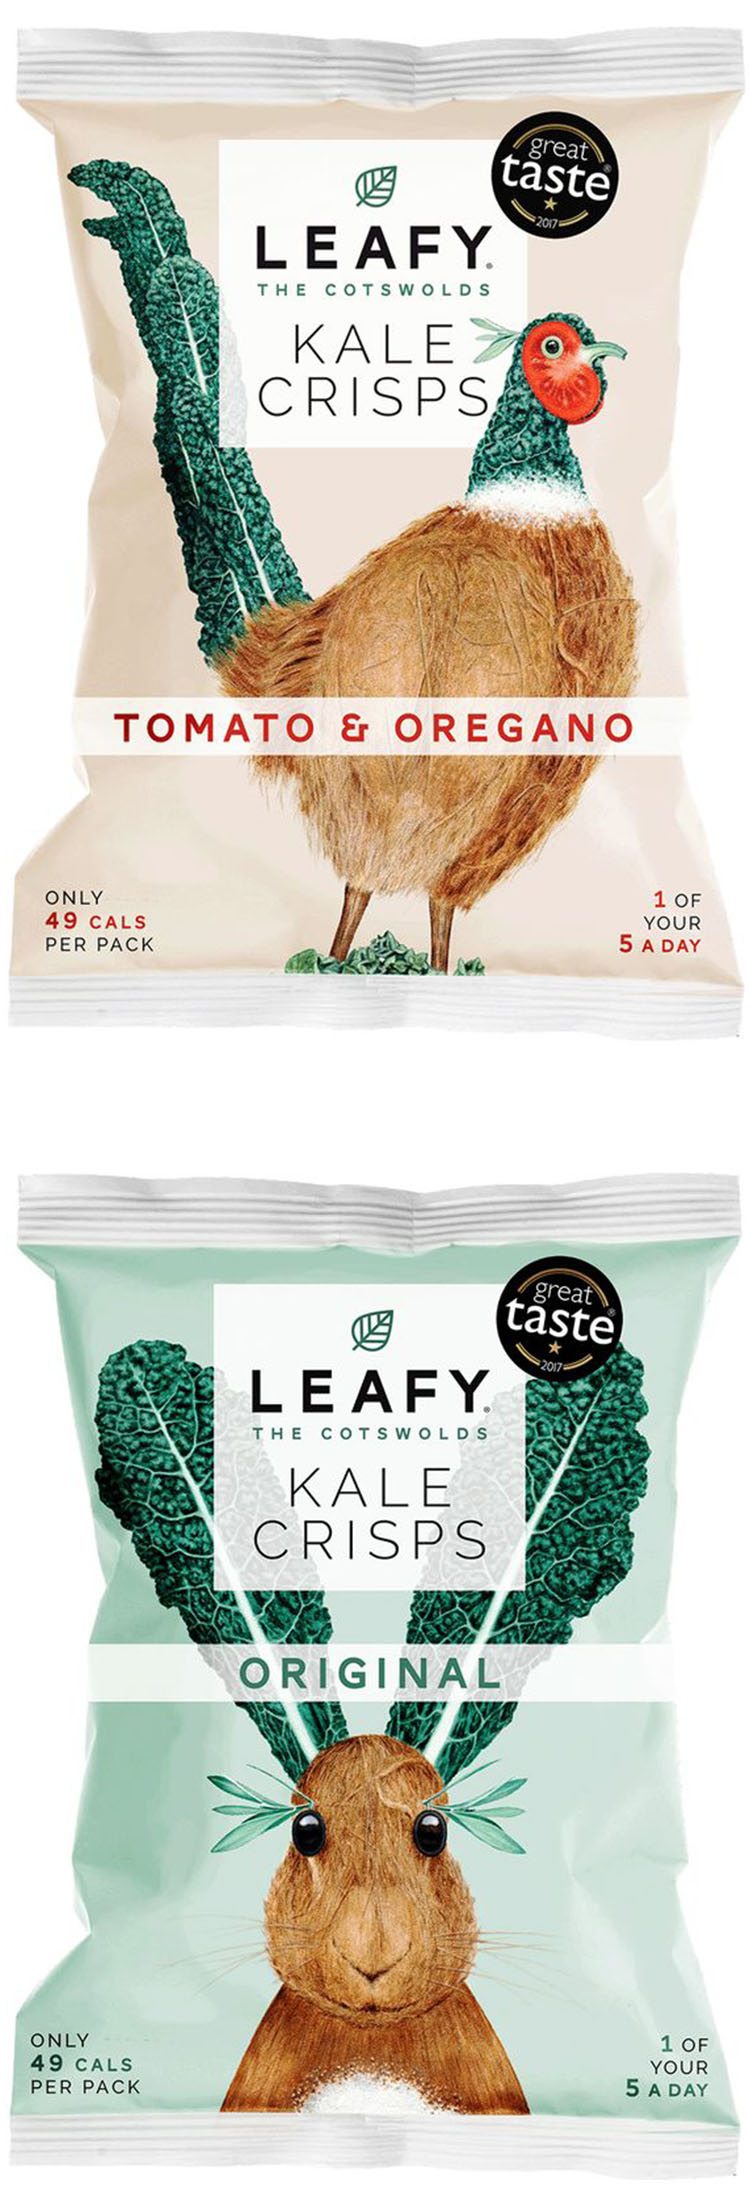 Leafy_kale_chips@forpackad.jpg